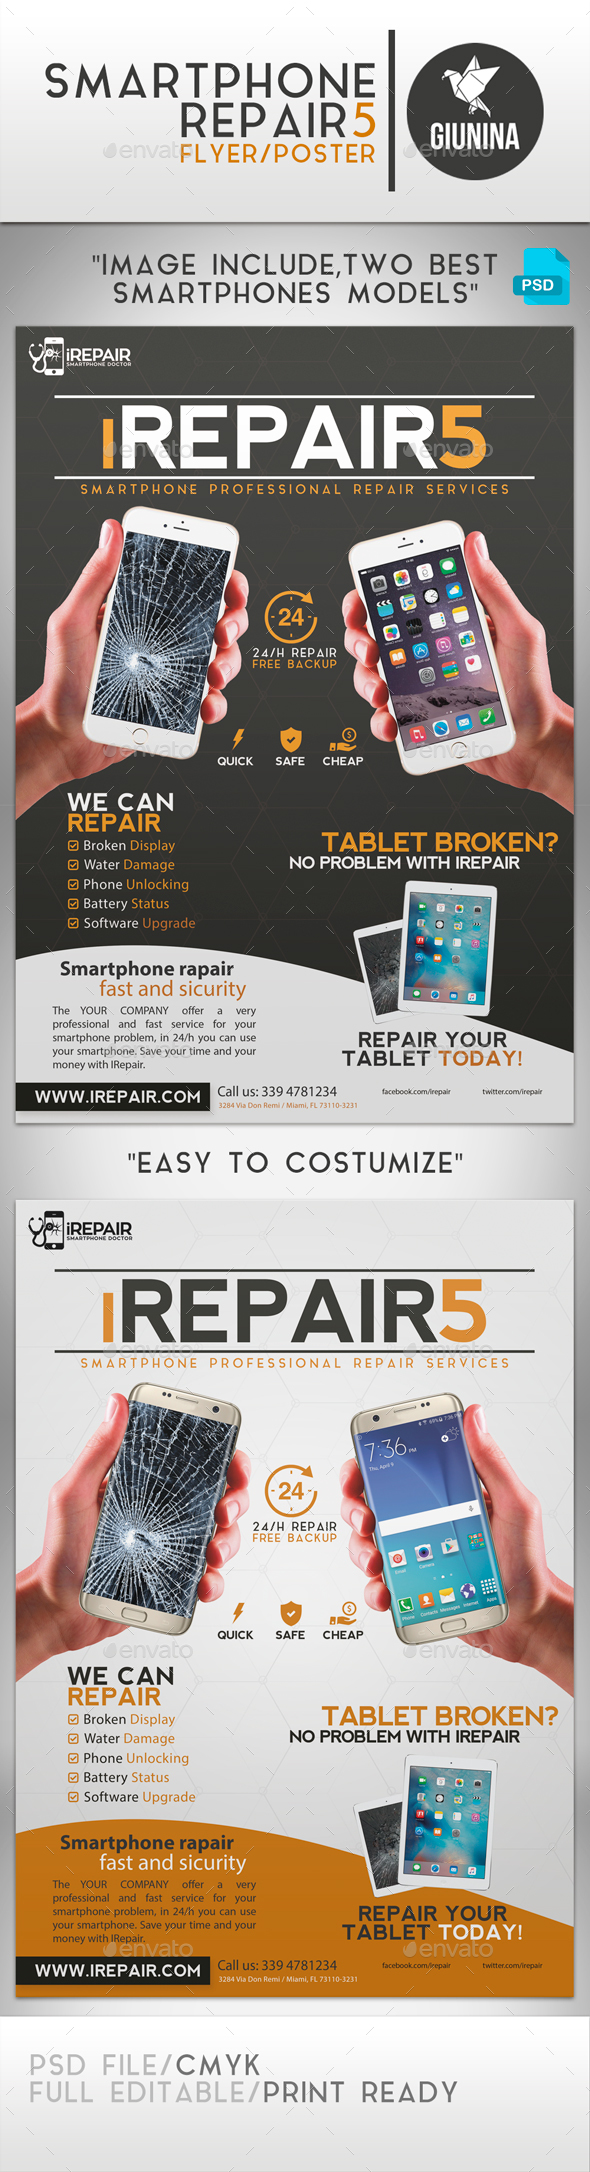 Smartphone Repair 5 Flyer/Poster - Commerce Flyers